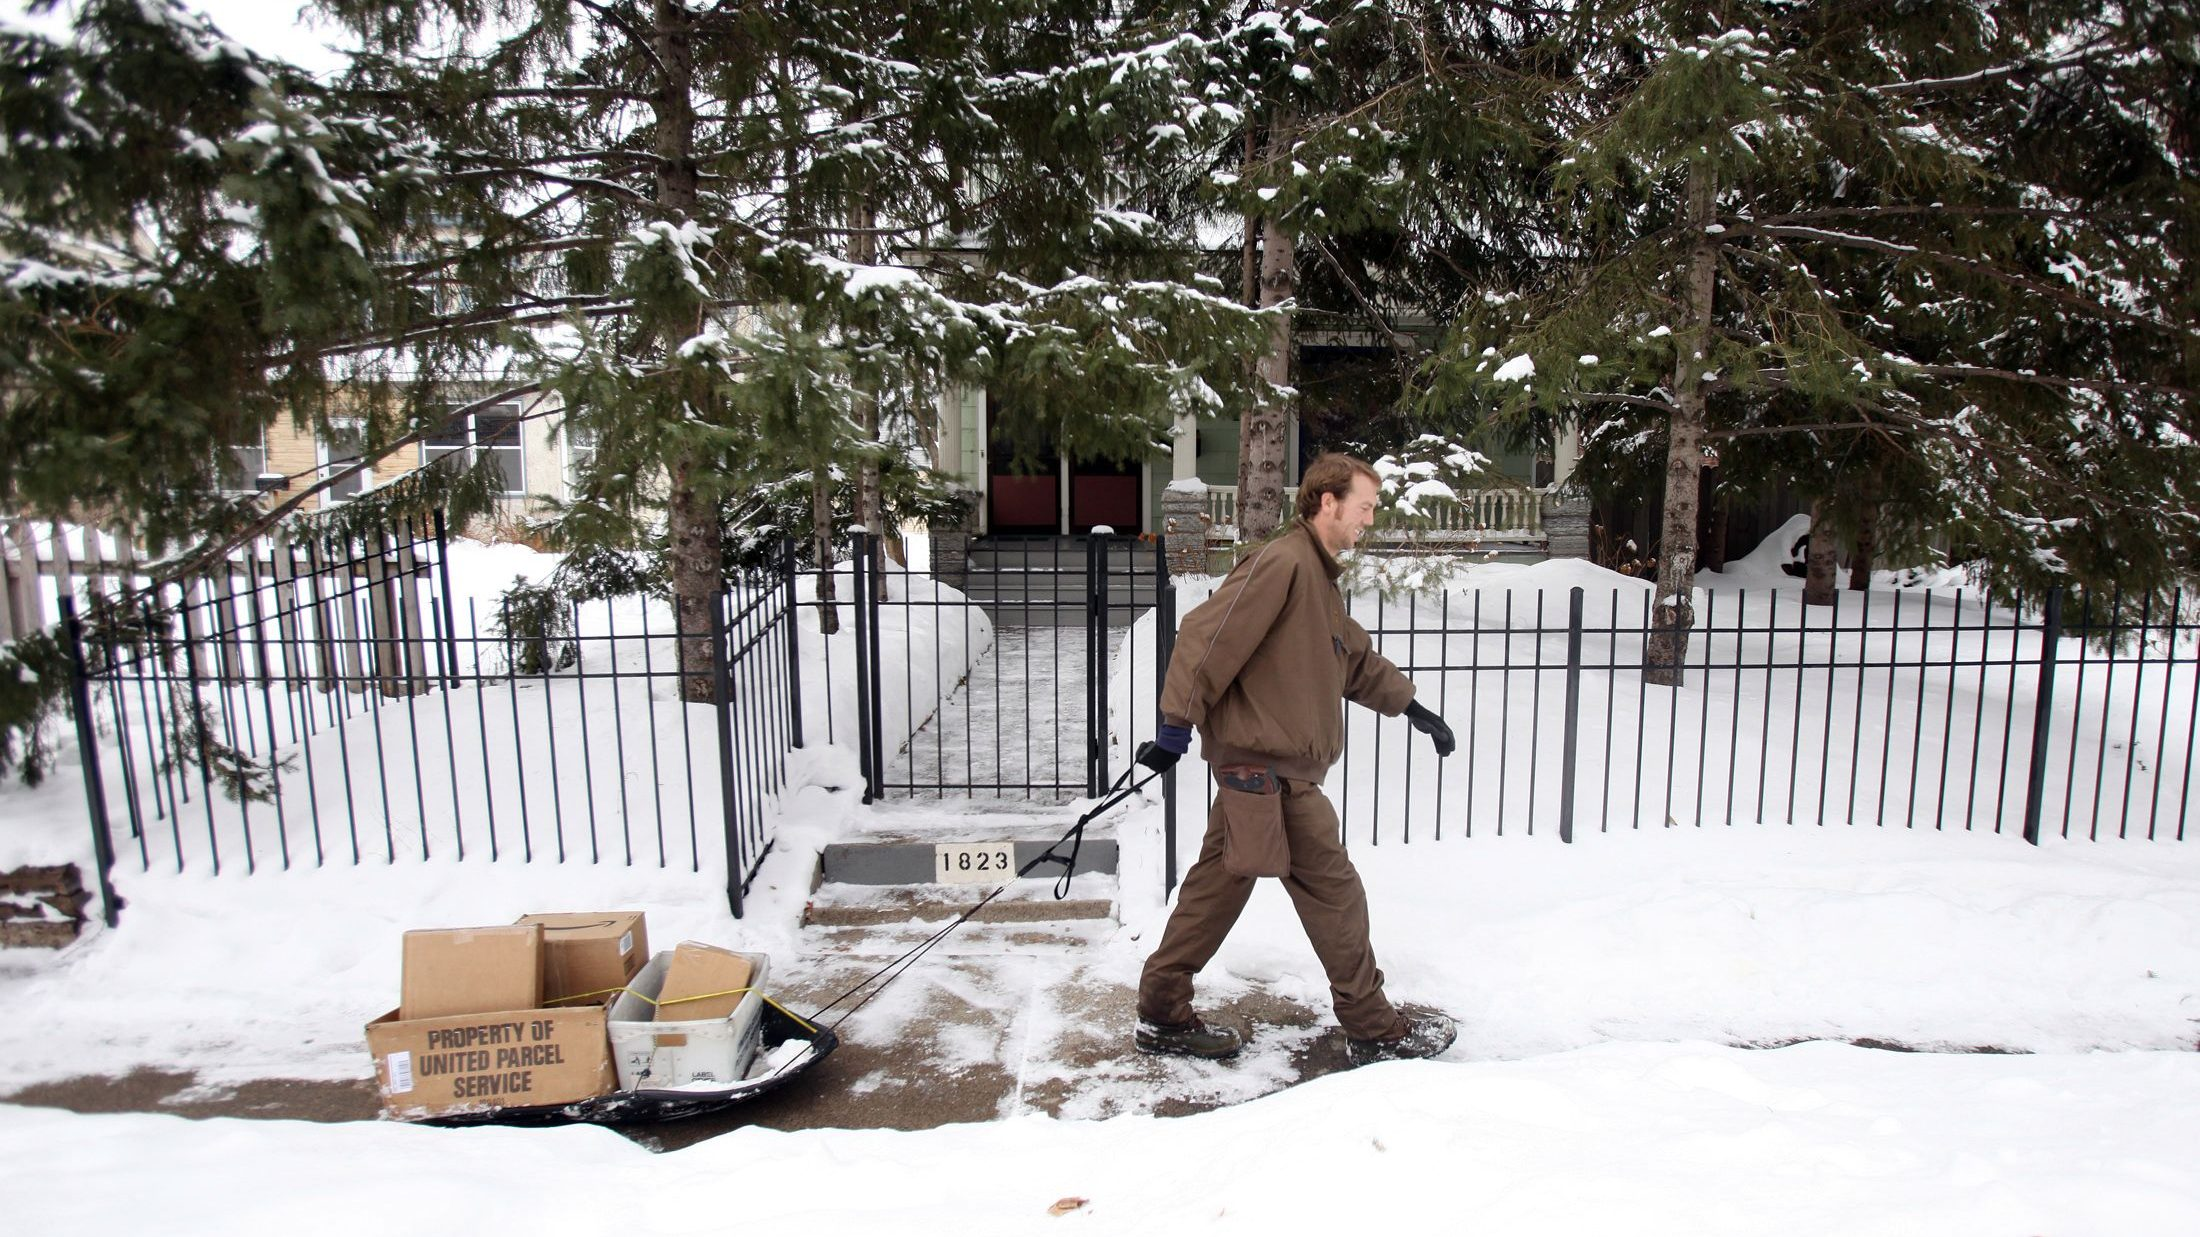 United Parcel Service worker Ryan Hewitt uses a sled to make deliveries through snowy conditions in Minneapolis, December 22, 2010. Today is the busiest delivery day of the year for UPS.